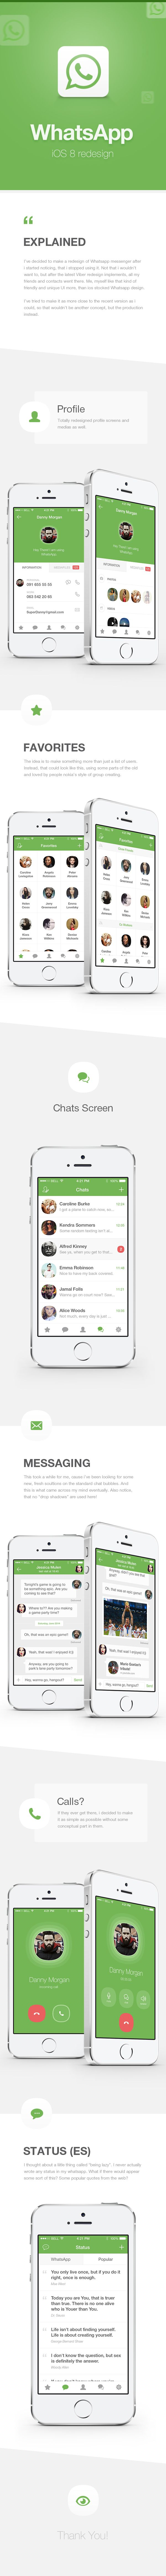 WhatsApp Redesign for iOS 8 (2014)